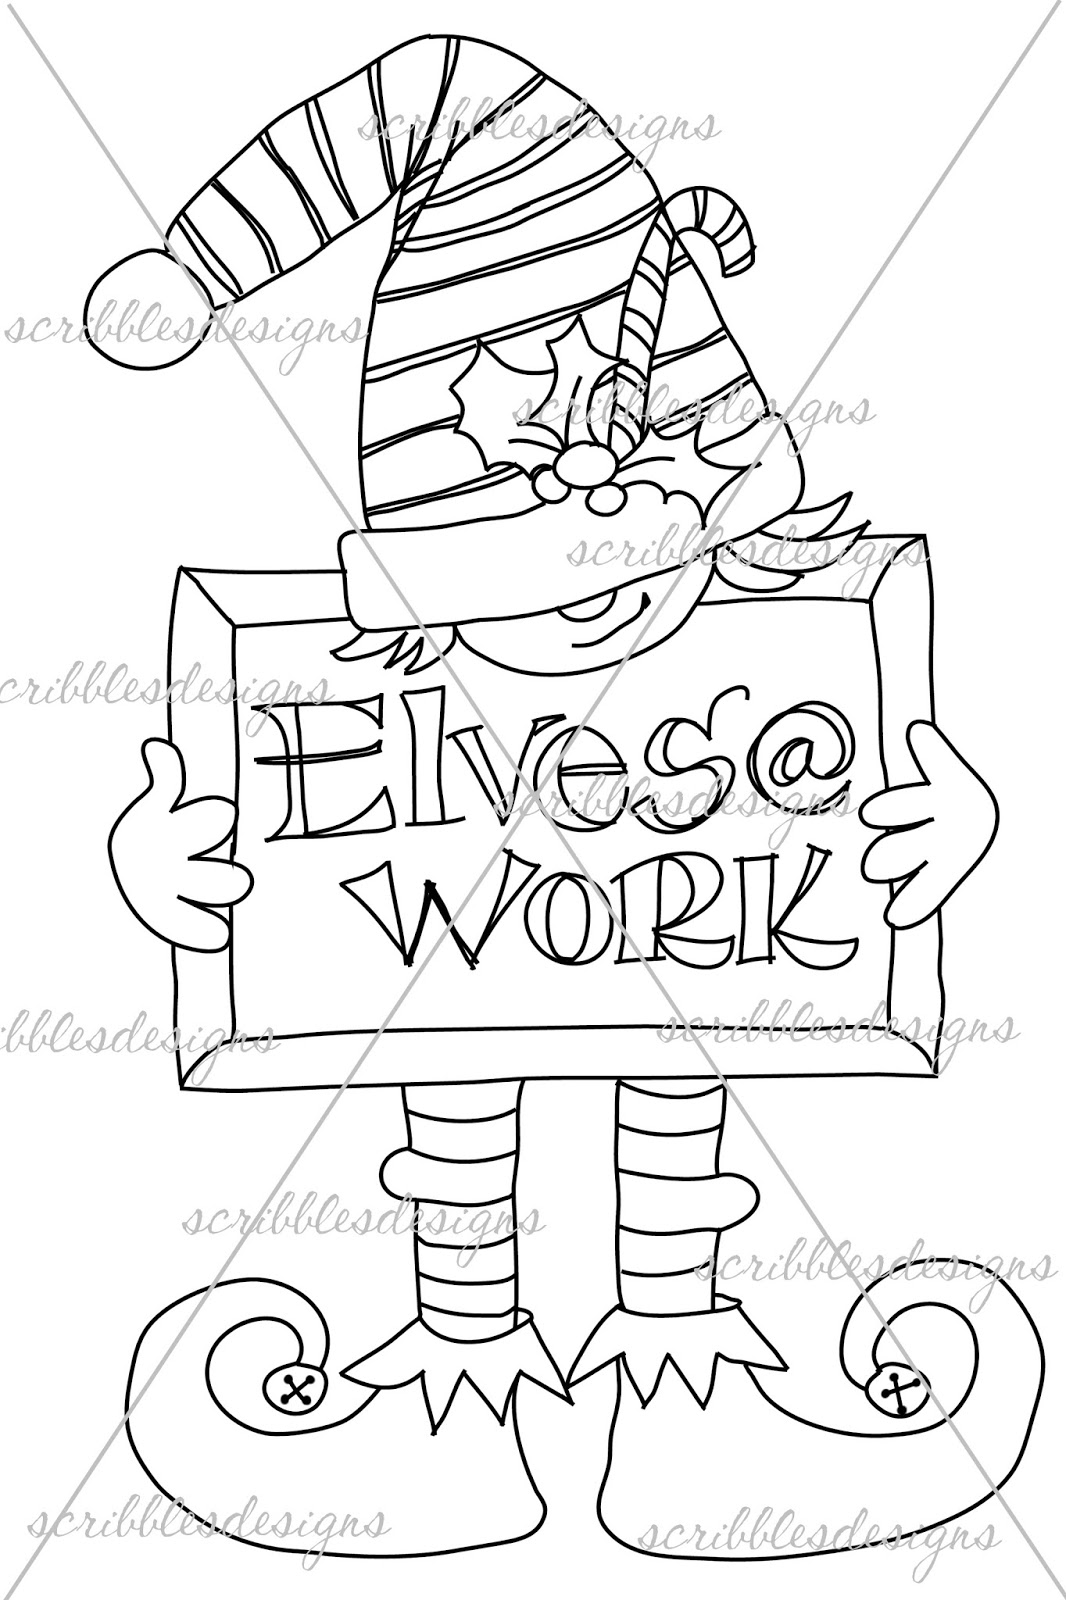 http://buyscribblesdesigns.blogspot.ca/2014/12/870-elves-work-300.html